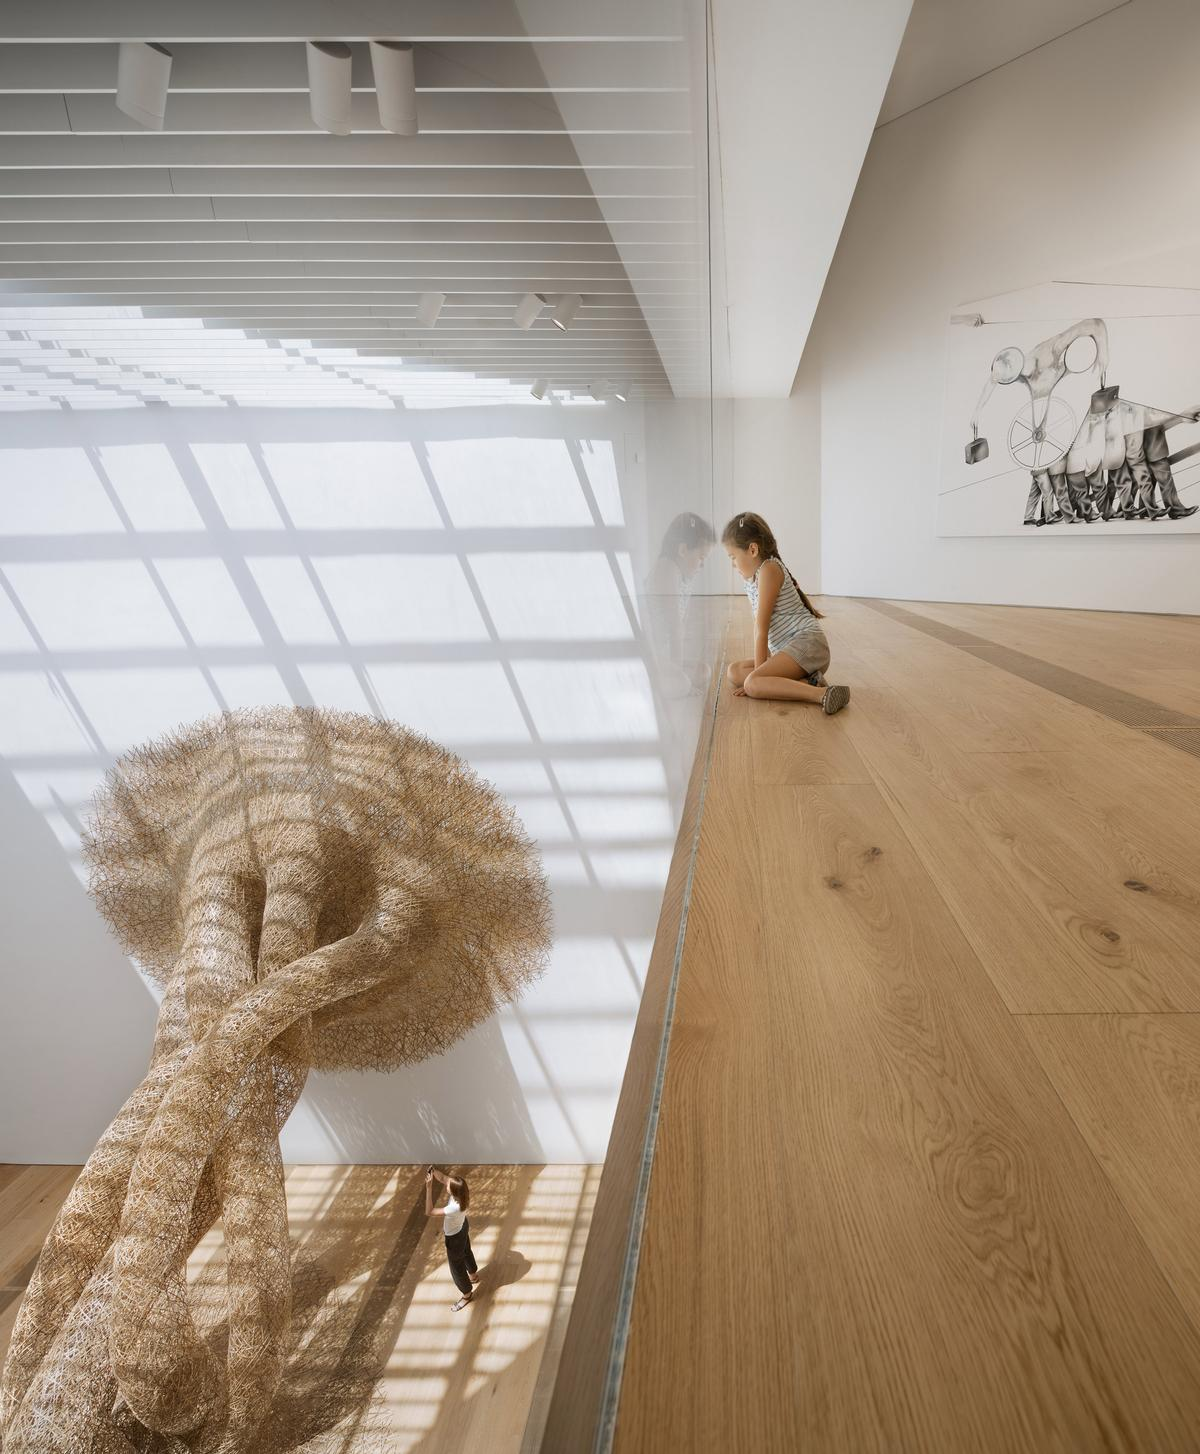 One of the first exhibits is a temporary installation by Japanese bamboo artist Tanabe Chikuunsai IV / NAARO